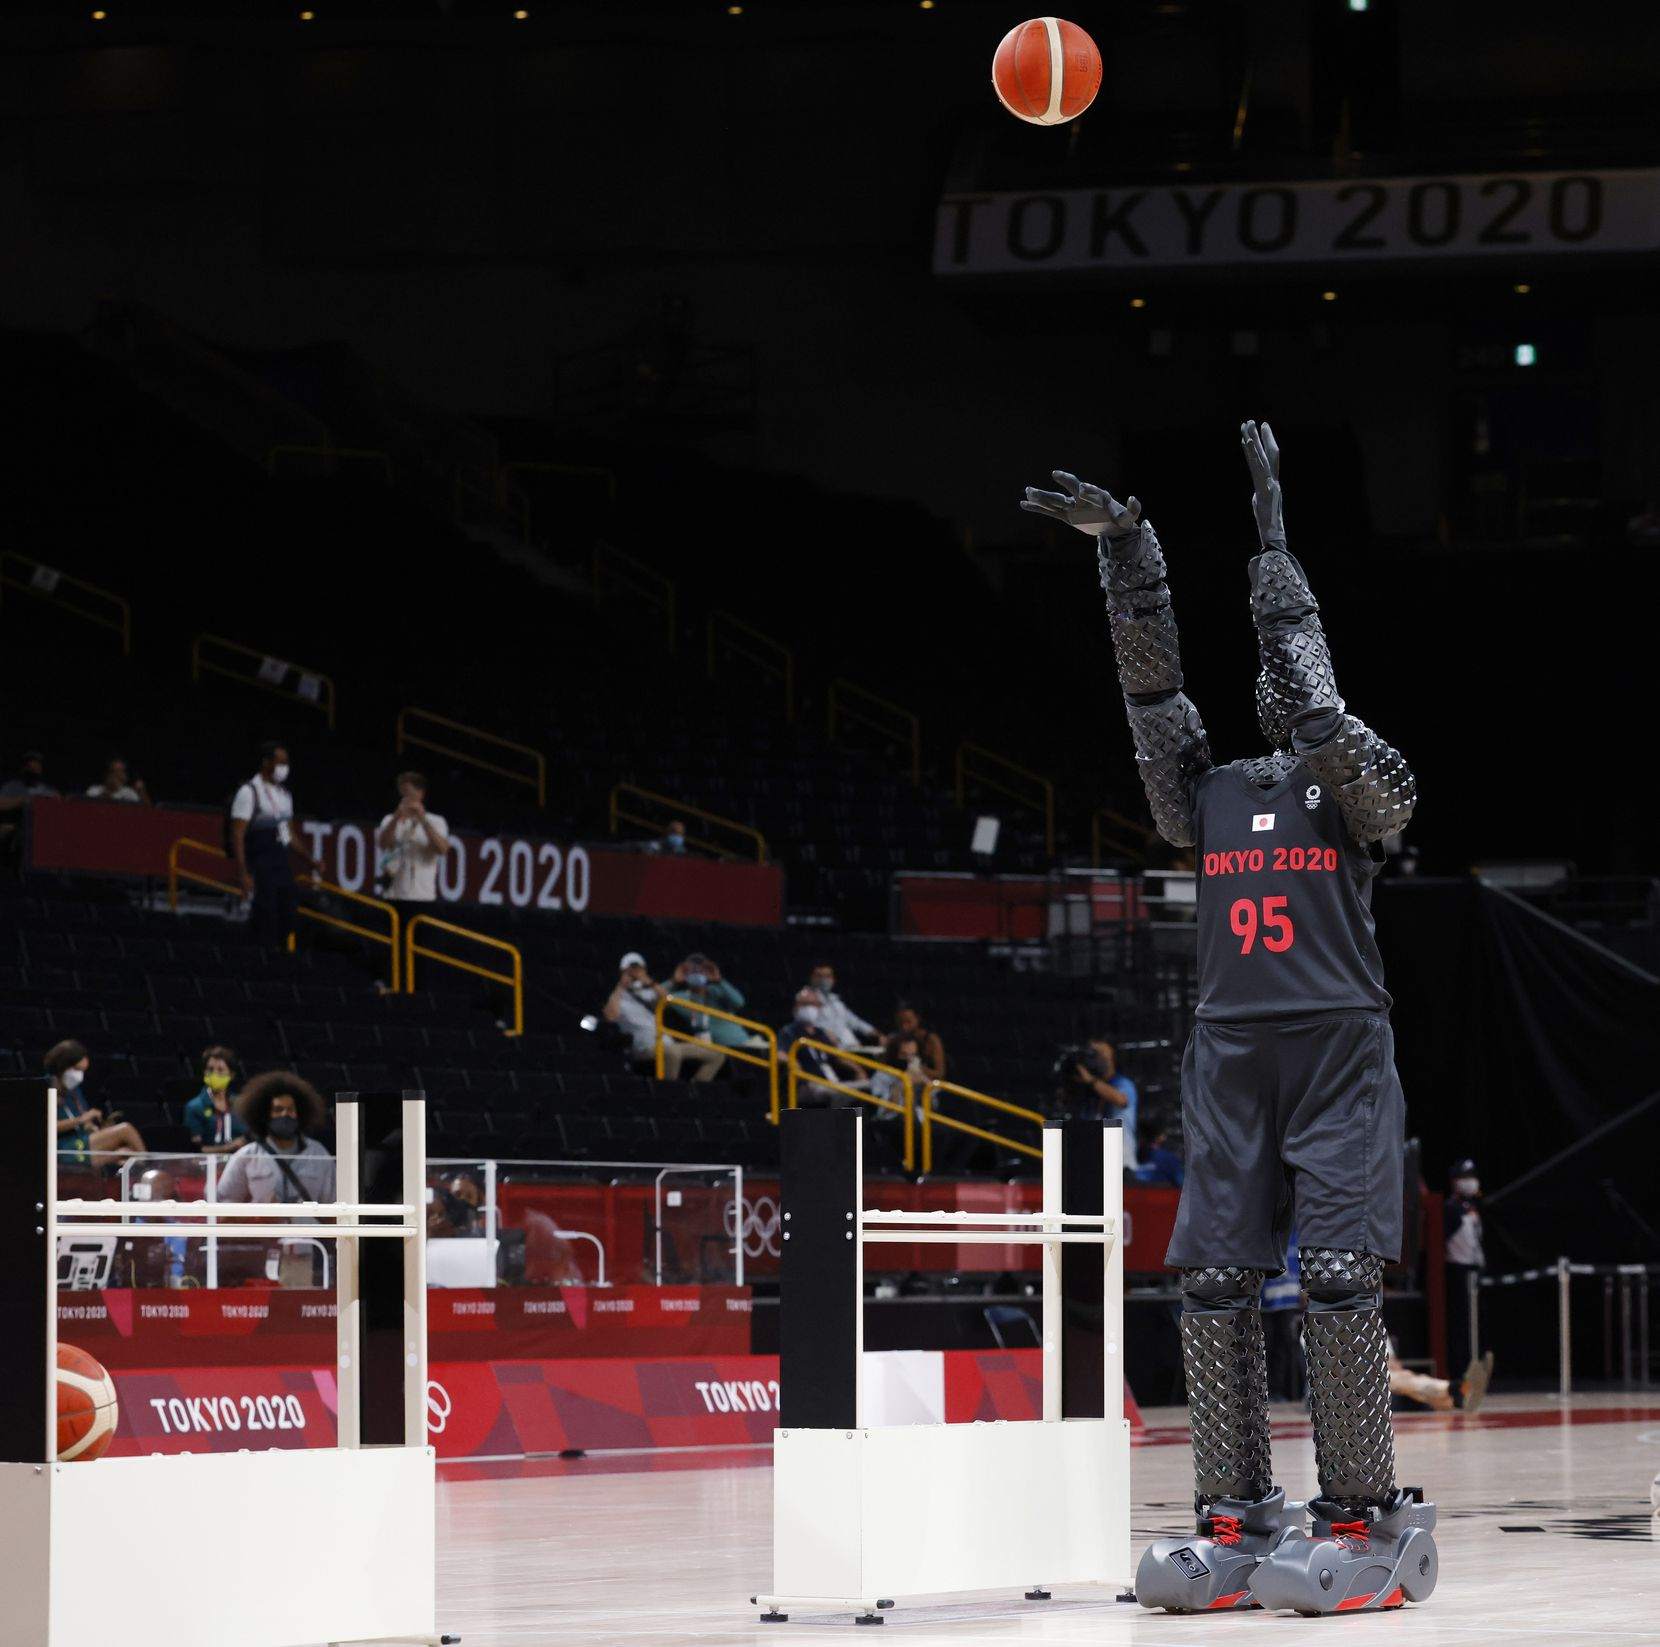 A robot shoots a basketball prior to the start of a game between USA and Australia for a men's basketball semifinal at the postponed 2020 Tokyo Olympics at Saitama Super Arena, on Thursday, August 5, 2021, in Saitama, Japan. USA defeated Australia 97-78 to advance to the gold medal game. (Vernon Bryant/The Dallas Morning News)